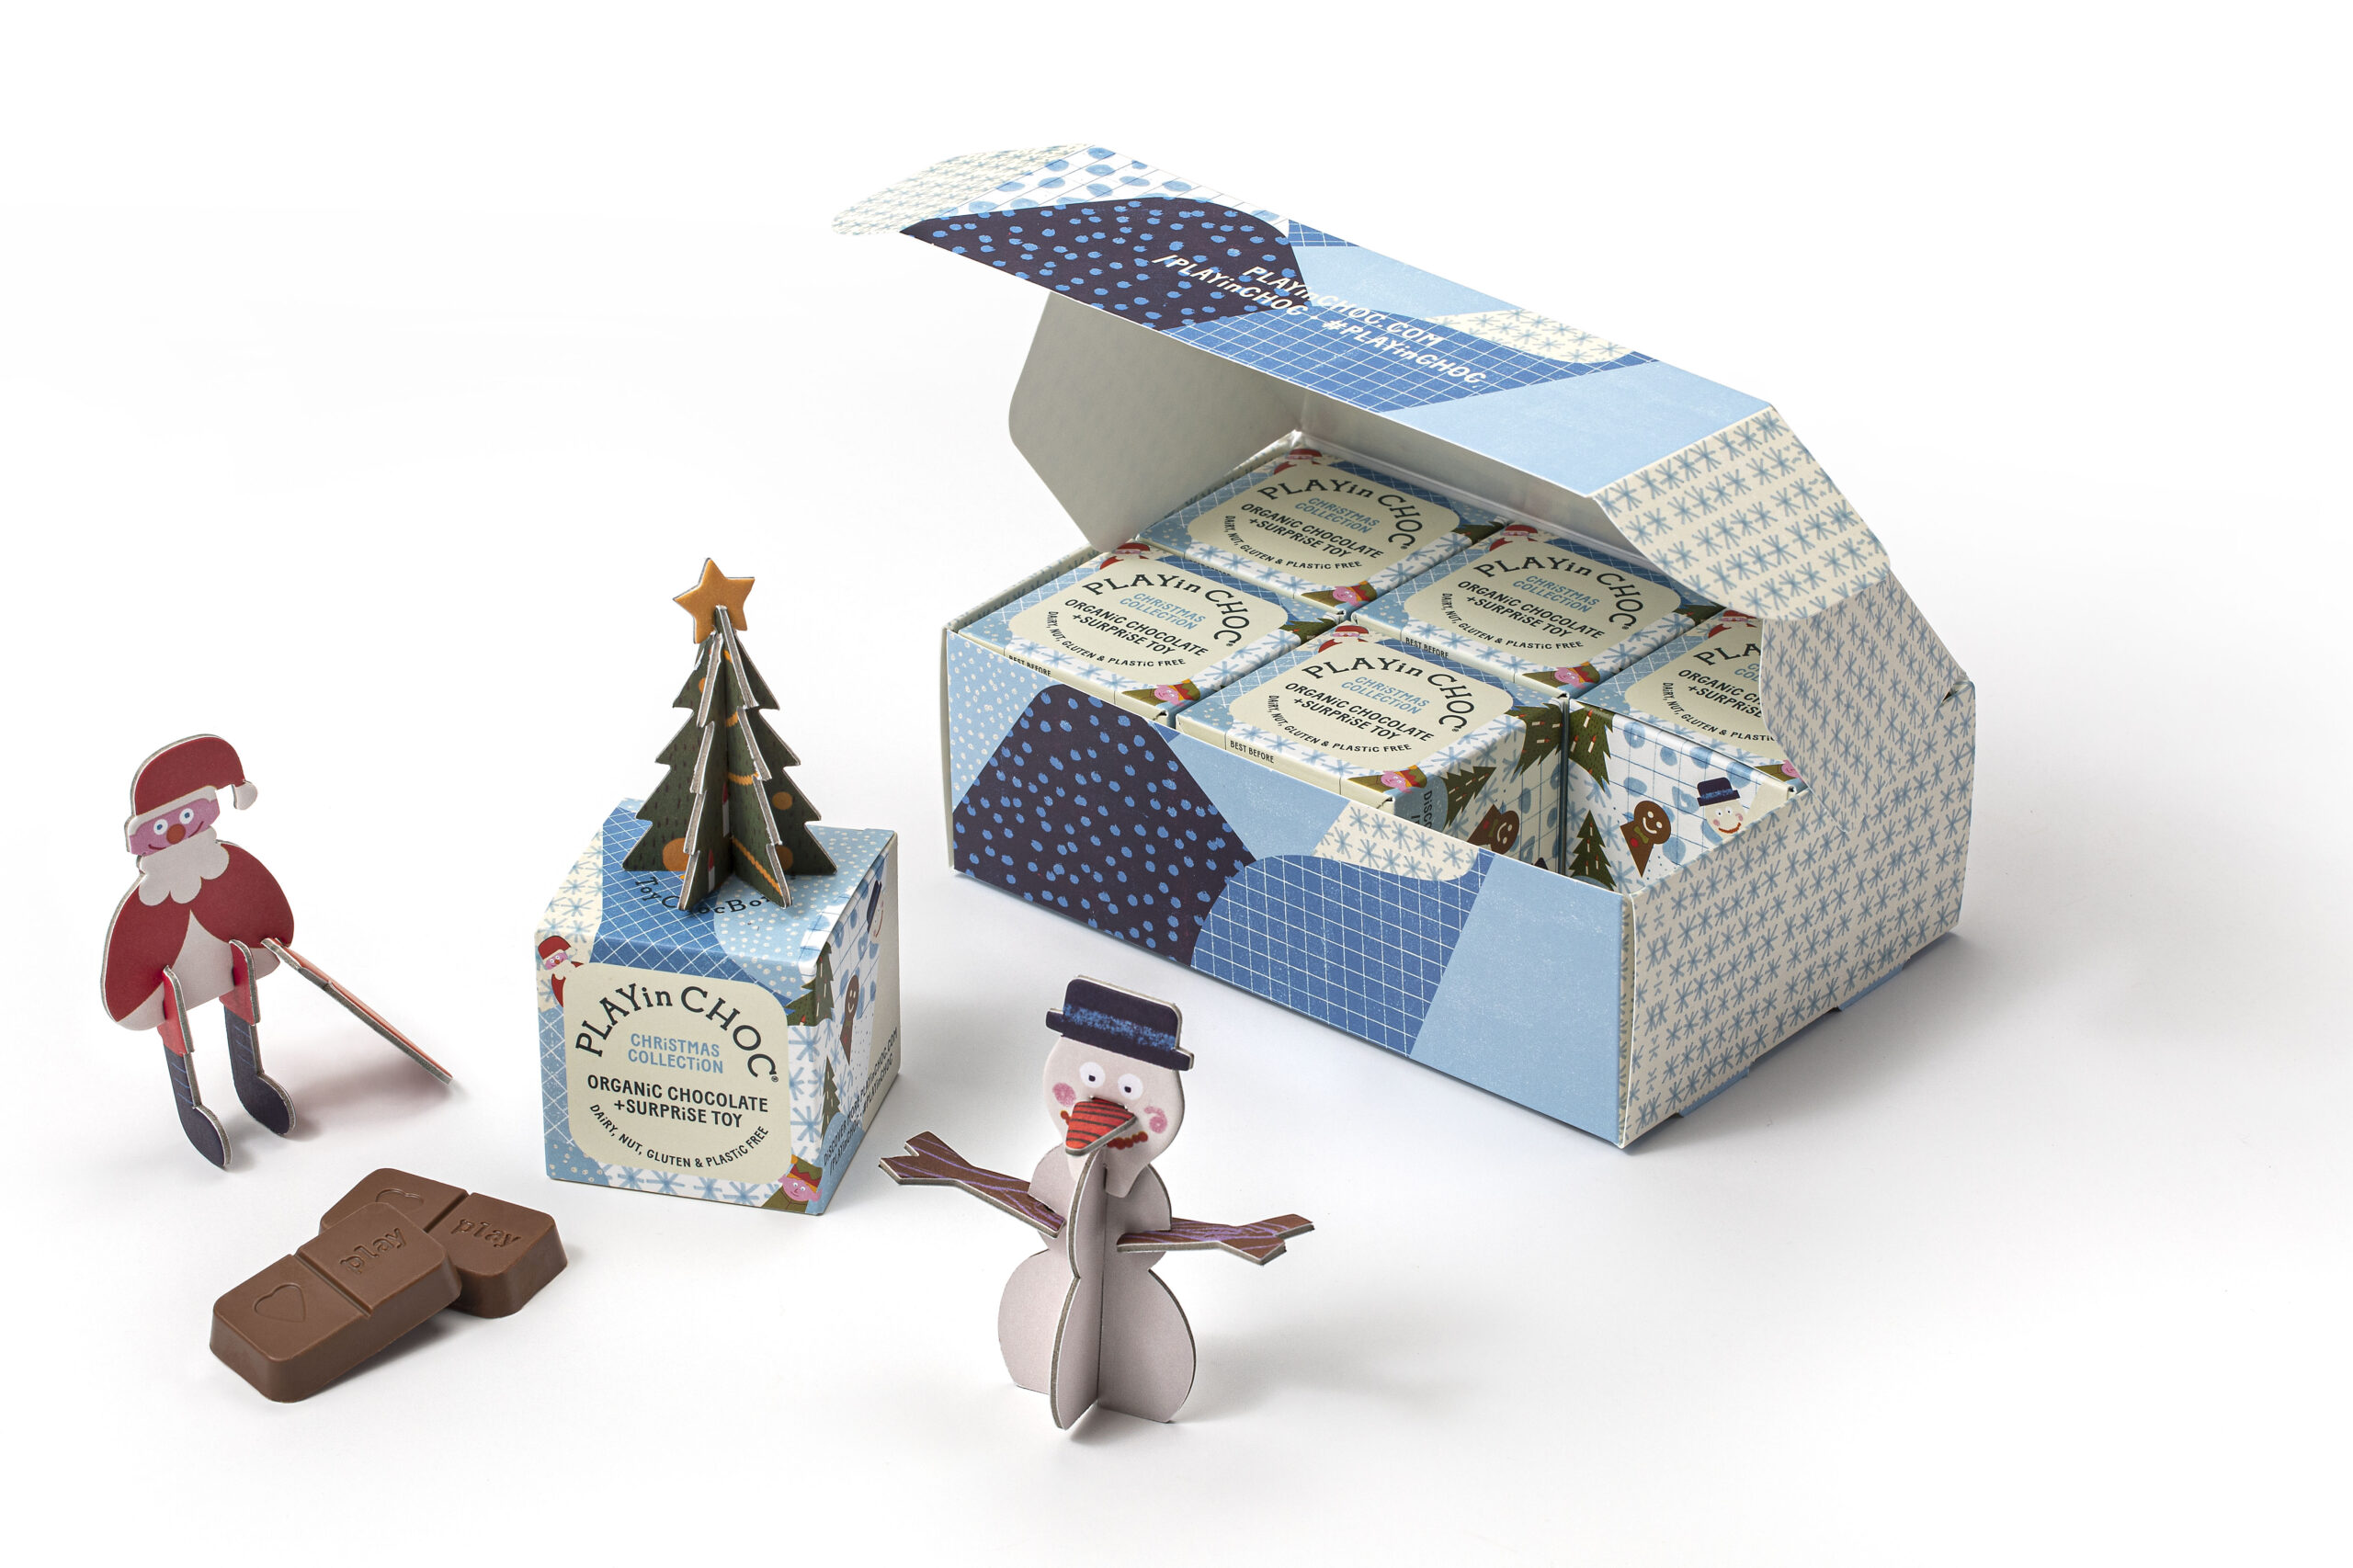 PLAY in CHOC Christmas Gift Set - 6 x Organic Chocolate Box with 3D puzzle and fun facts card! £17.50